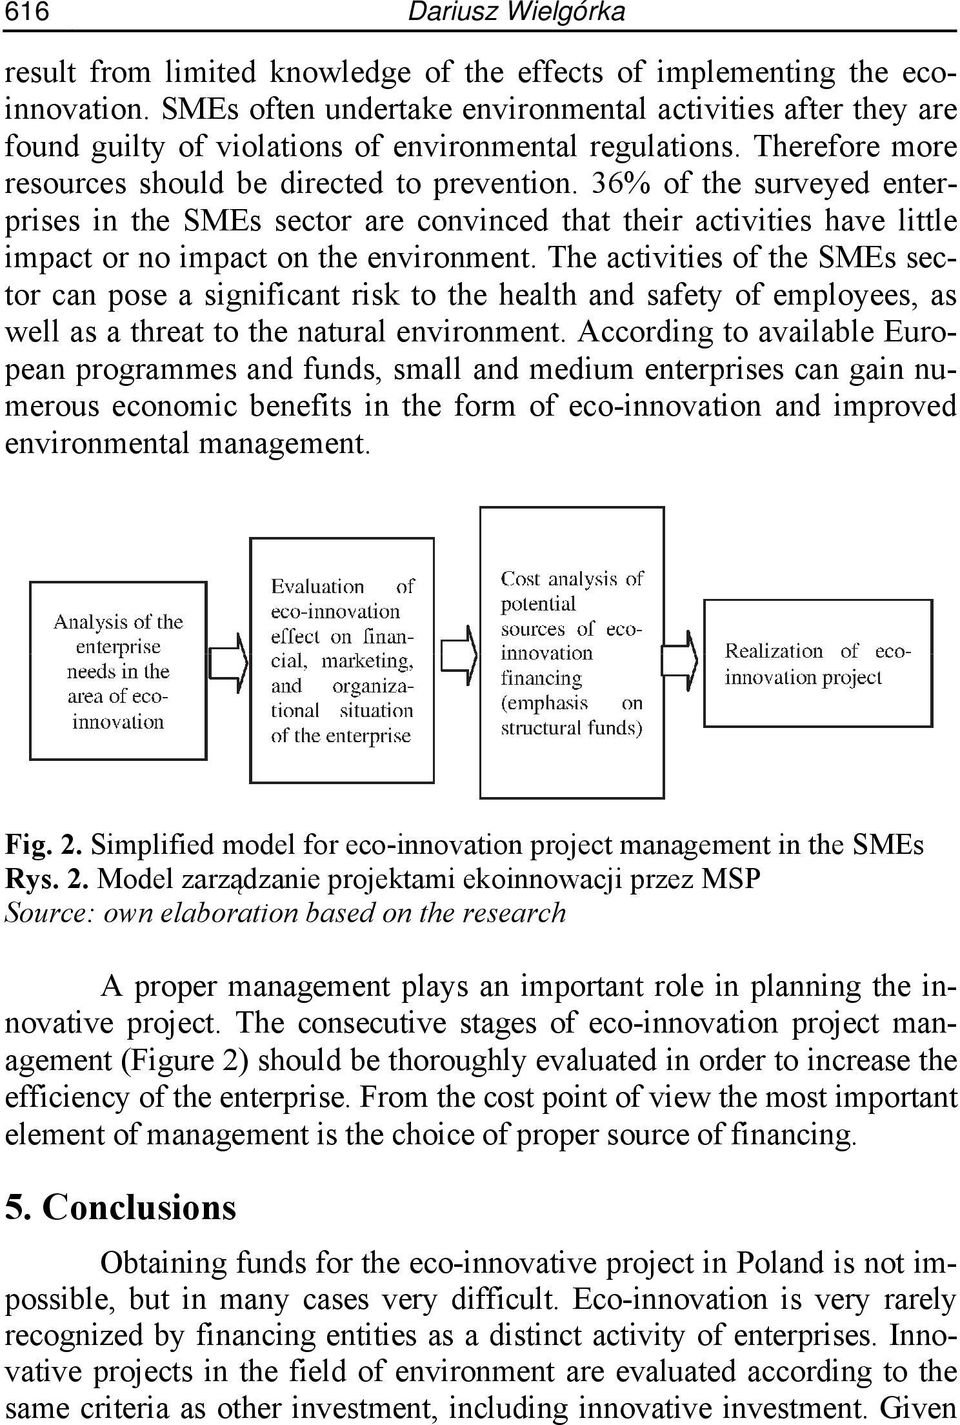 36% of the surveyed enterprises in the SMEs sector are convinced that their activities have little impact or no impact on the environment.